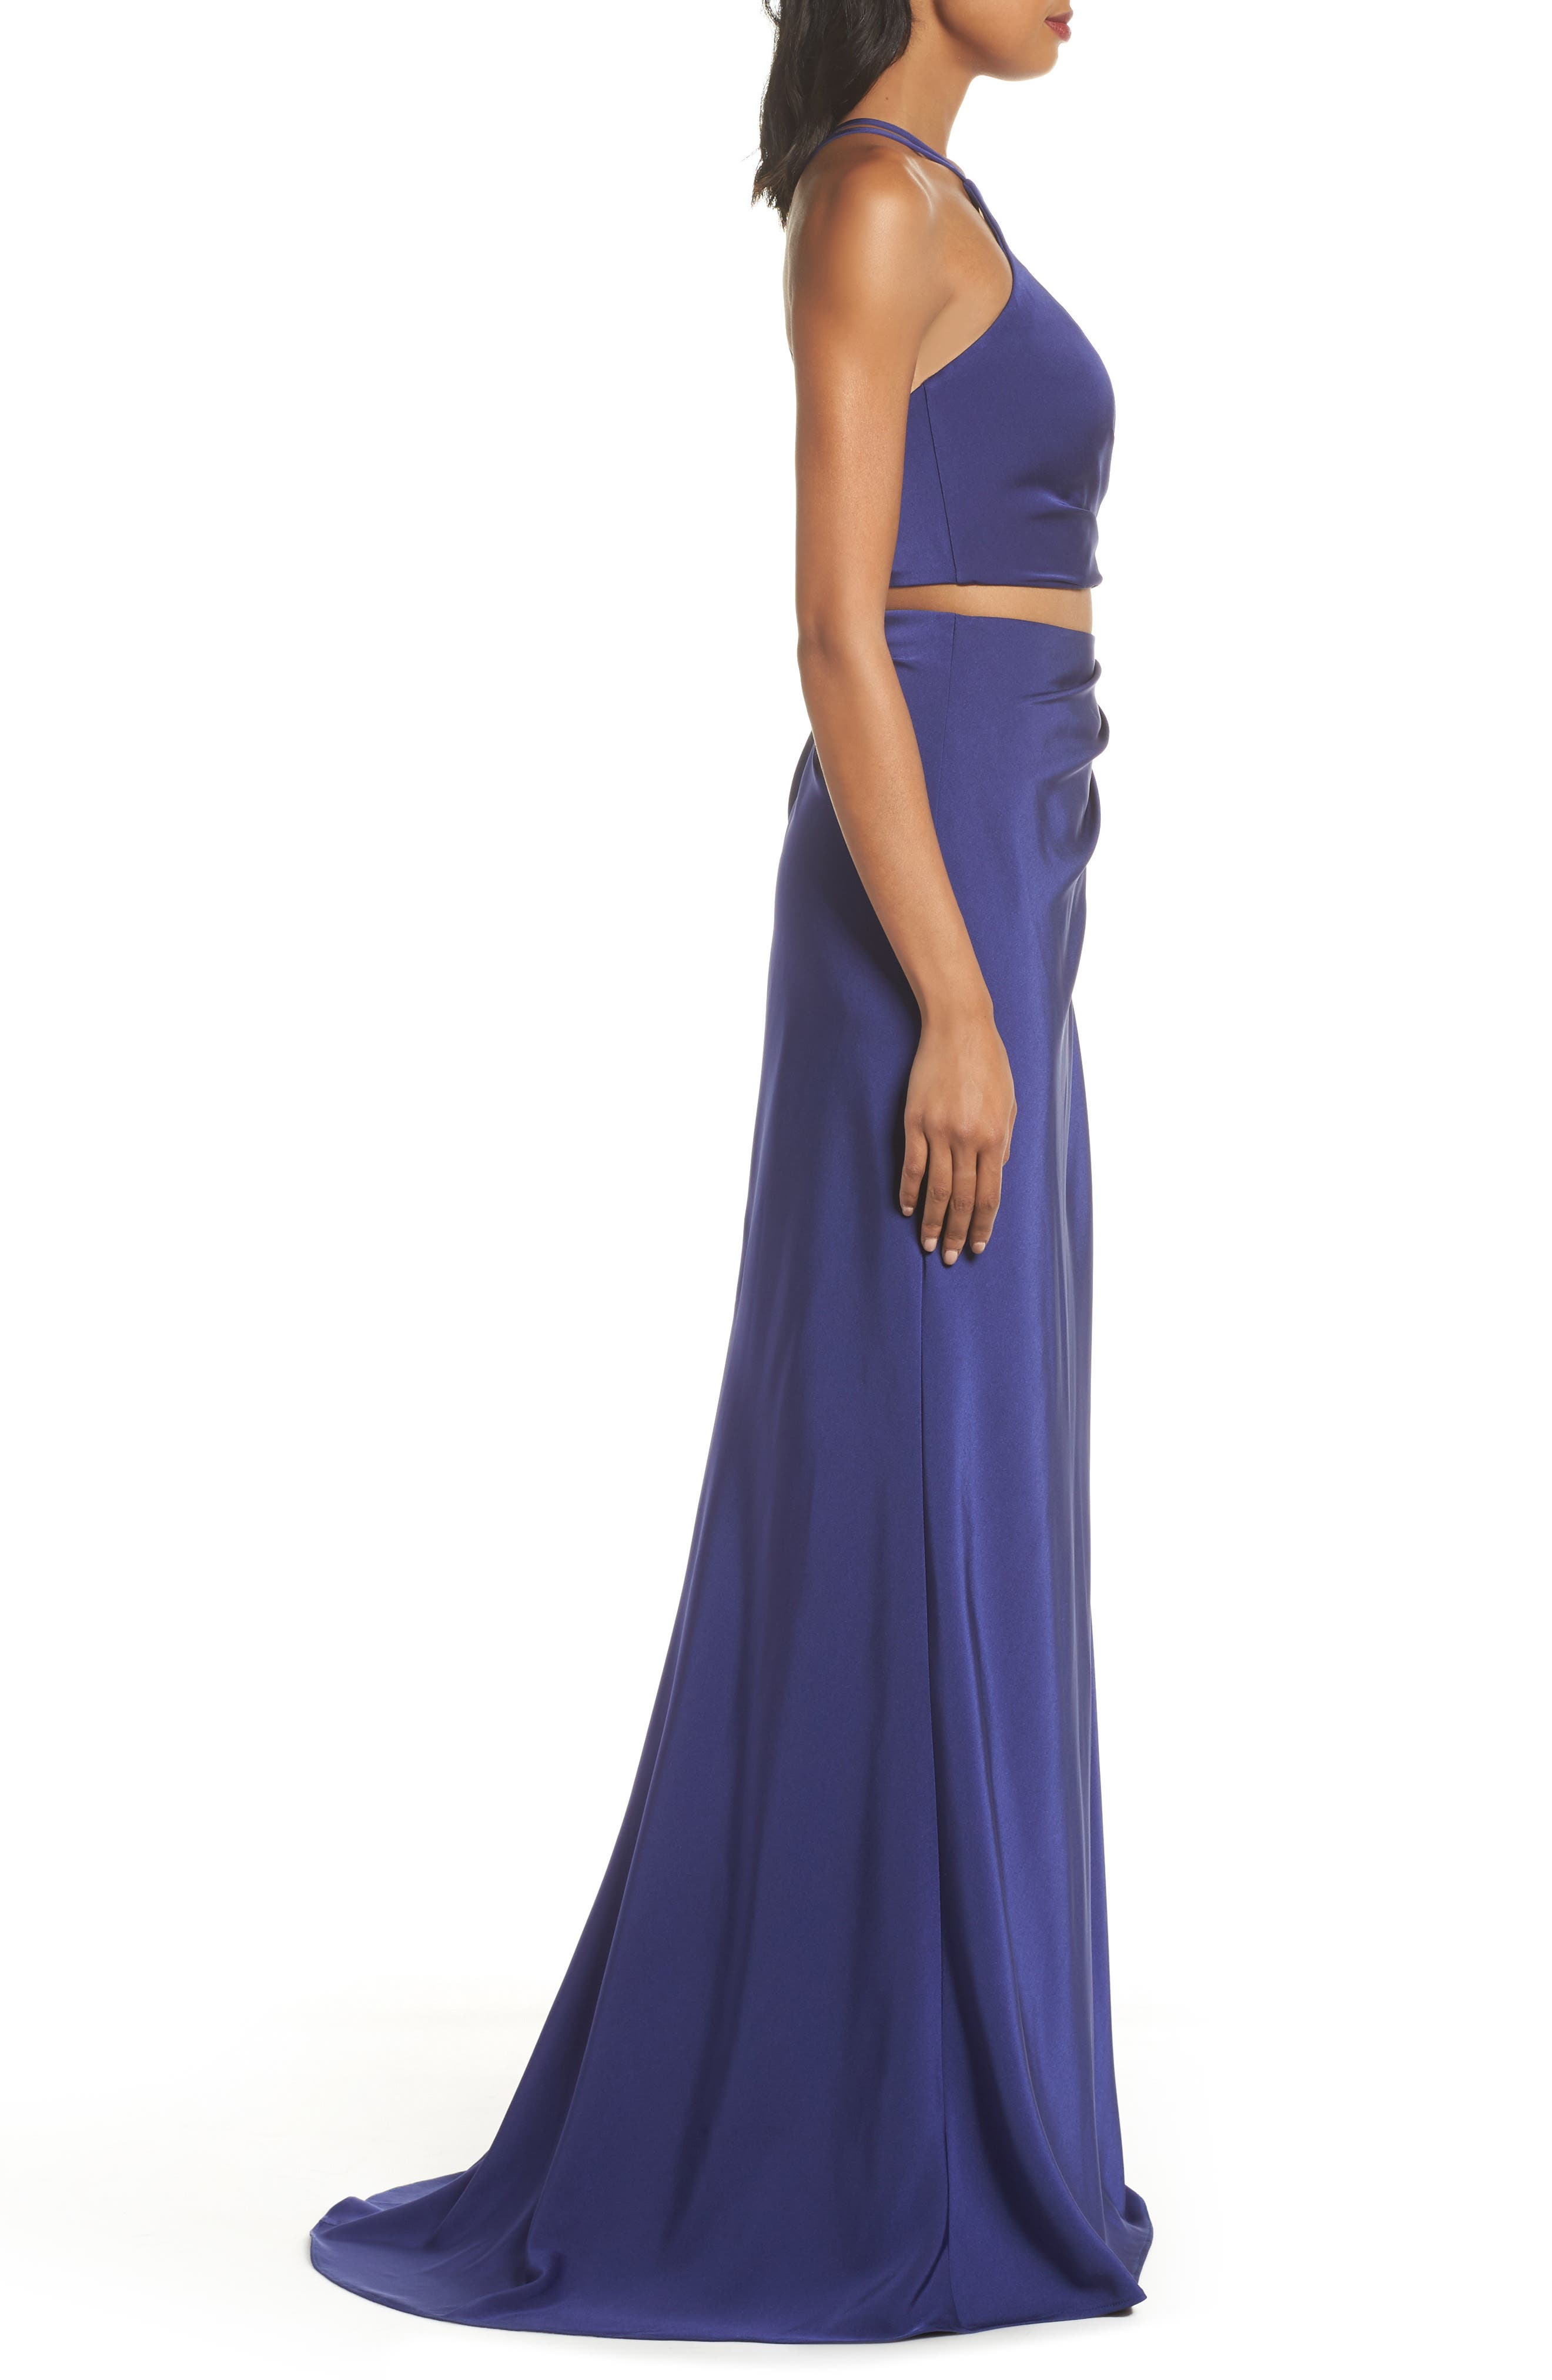 Strappy Two-Piece Sheath Gown,                             Alternate thumbnail 3, color,                             Dark Periwinkle